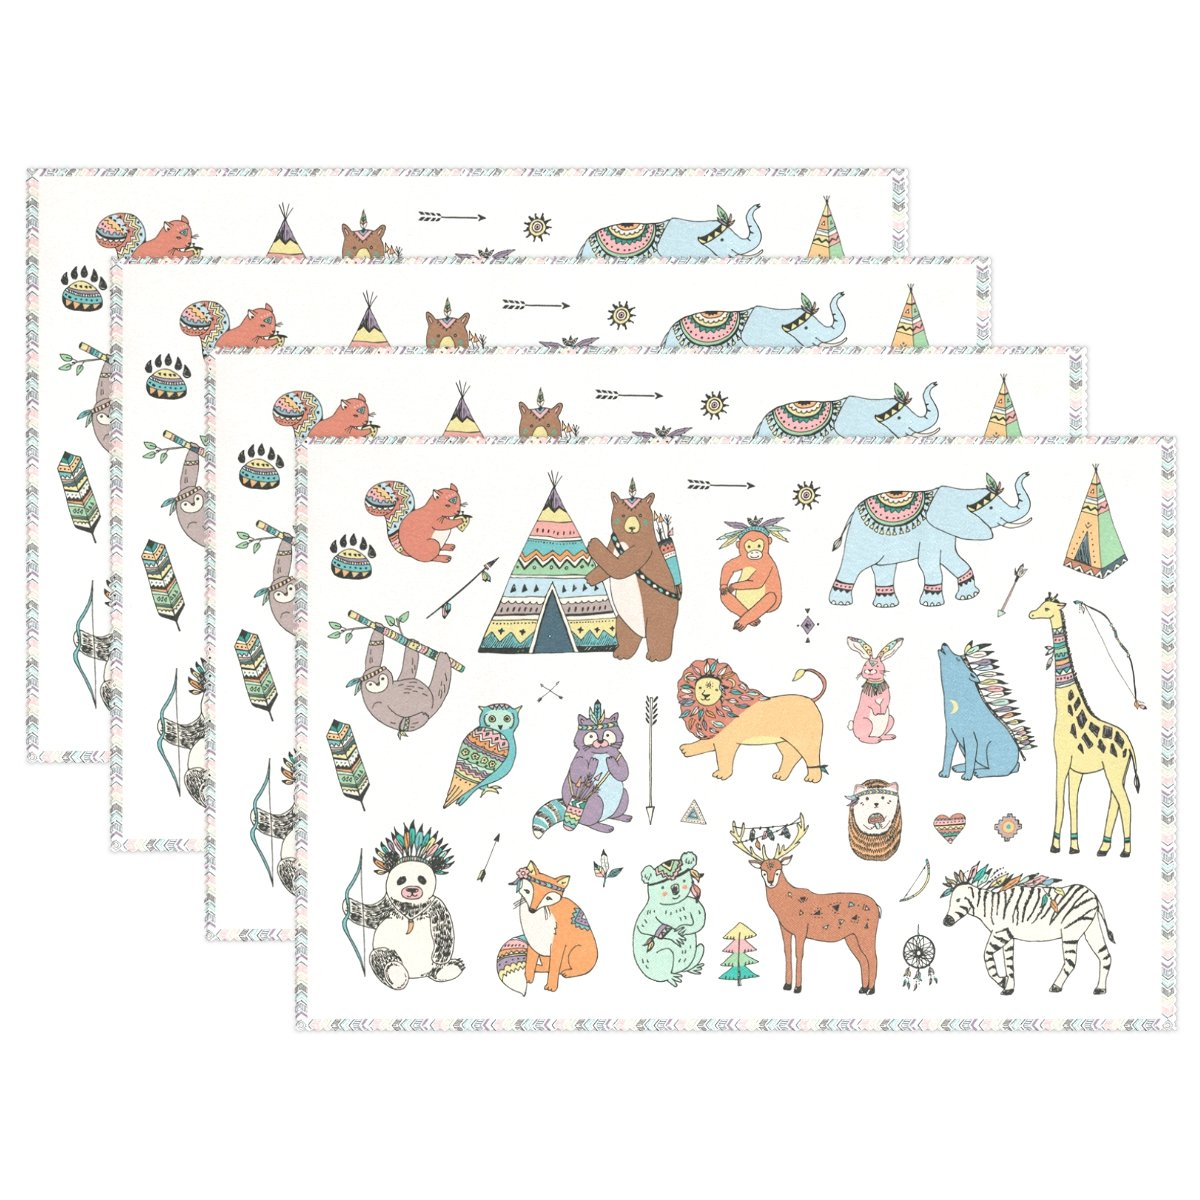 Top Carpenter Funny Tribal Animals Doodle Place Mats Washable Heat Resistant Polyester Table Mats 12'' x 18'', Set of 6